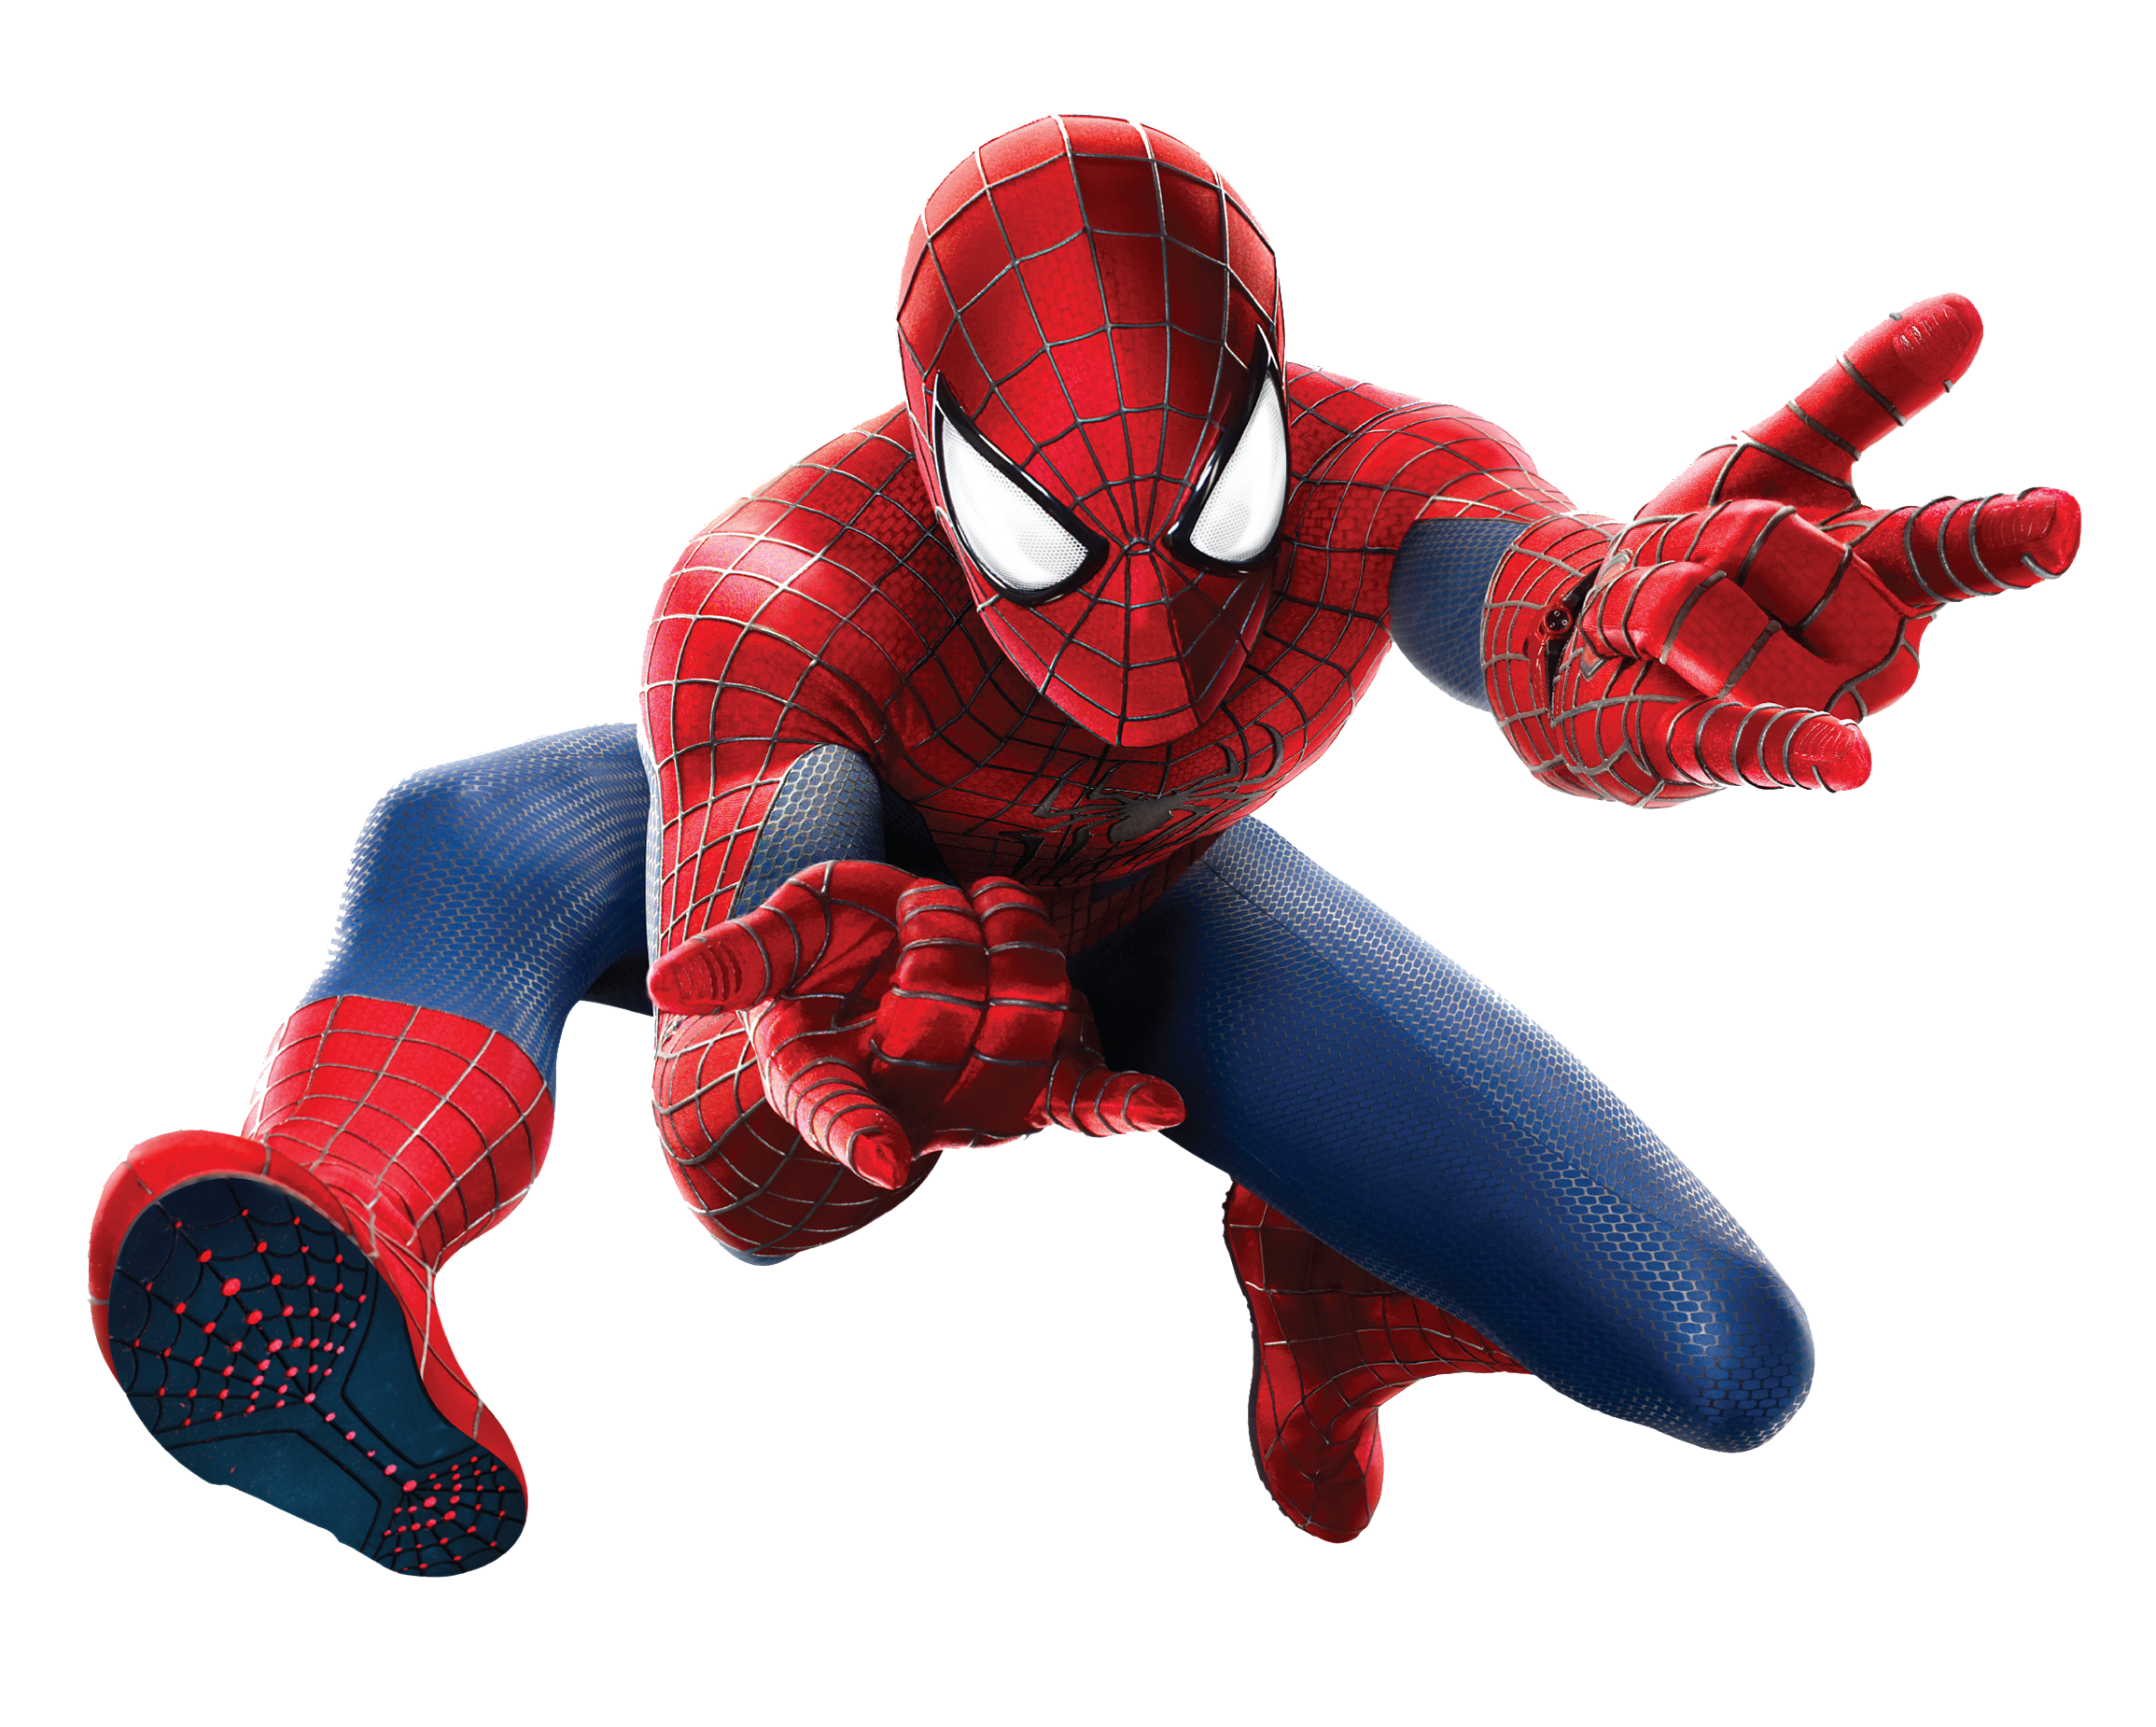 Spiderman HD PNG